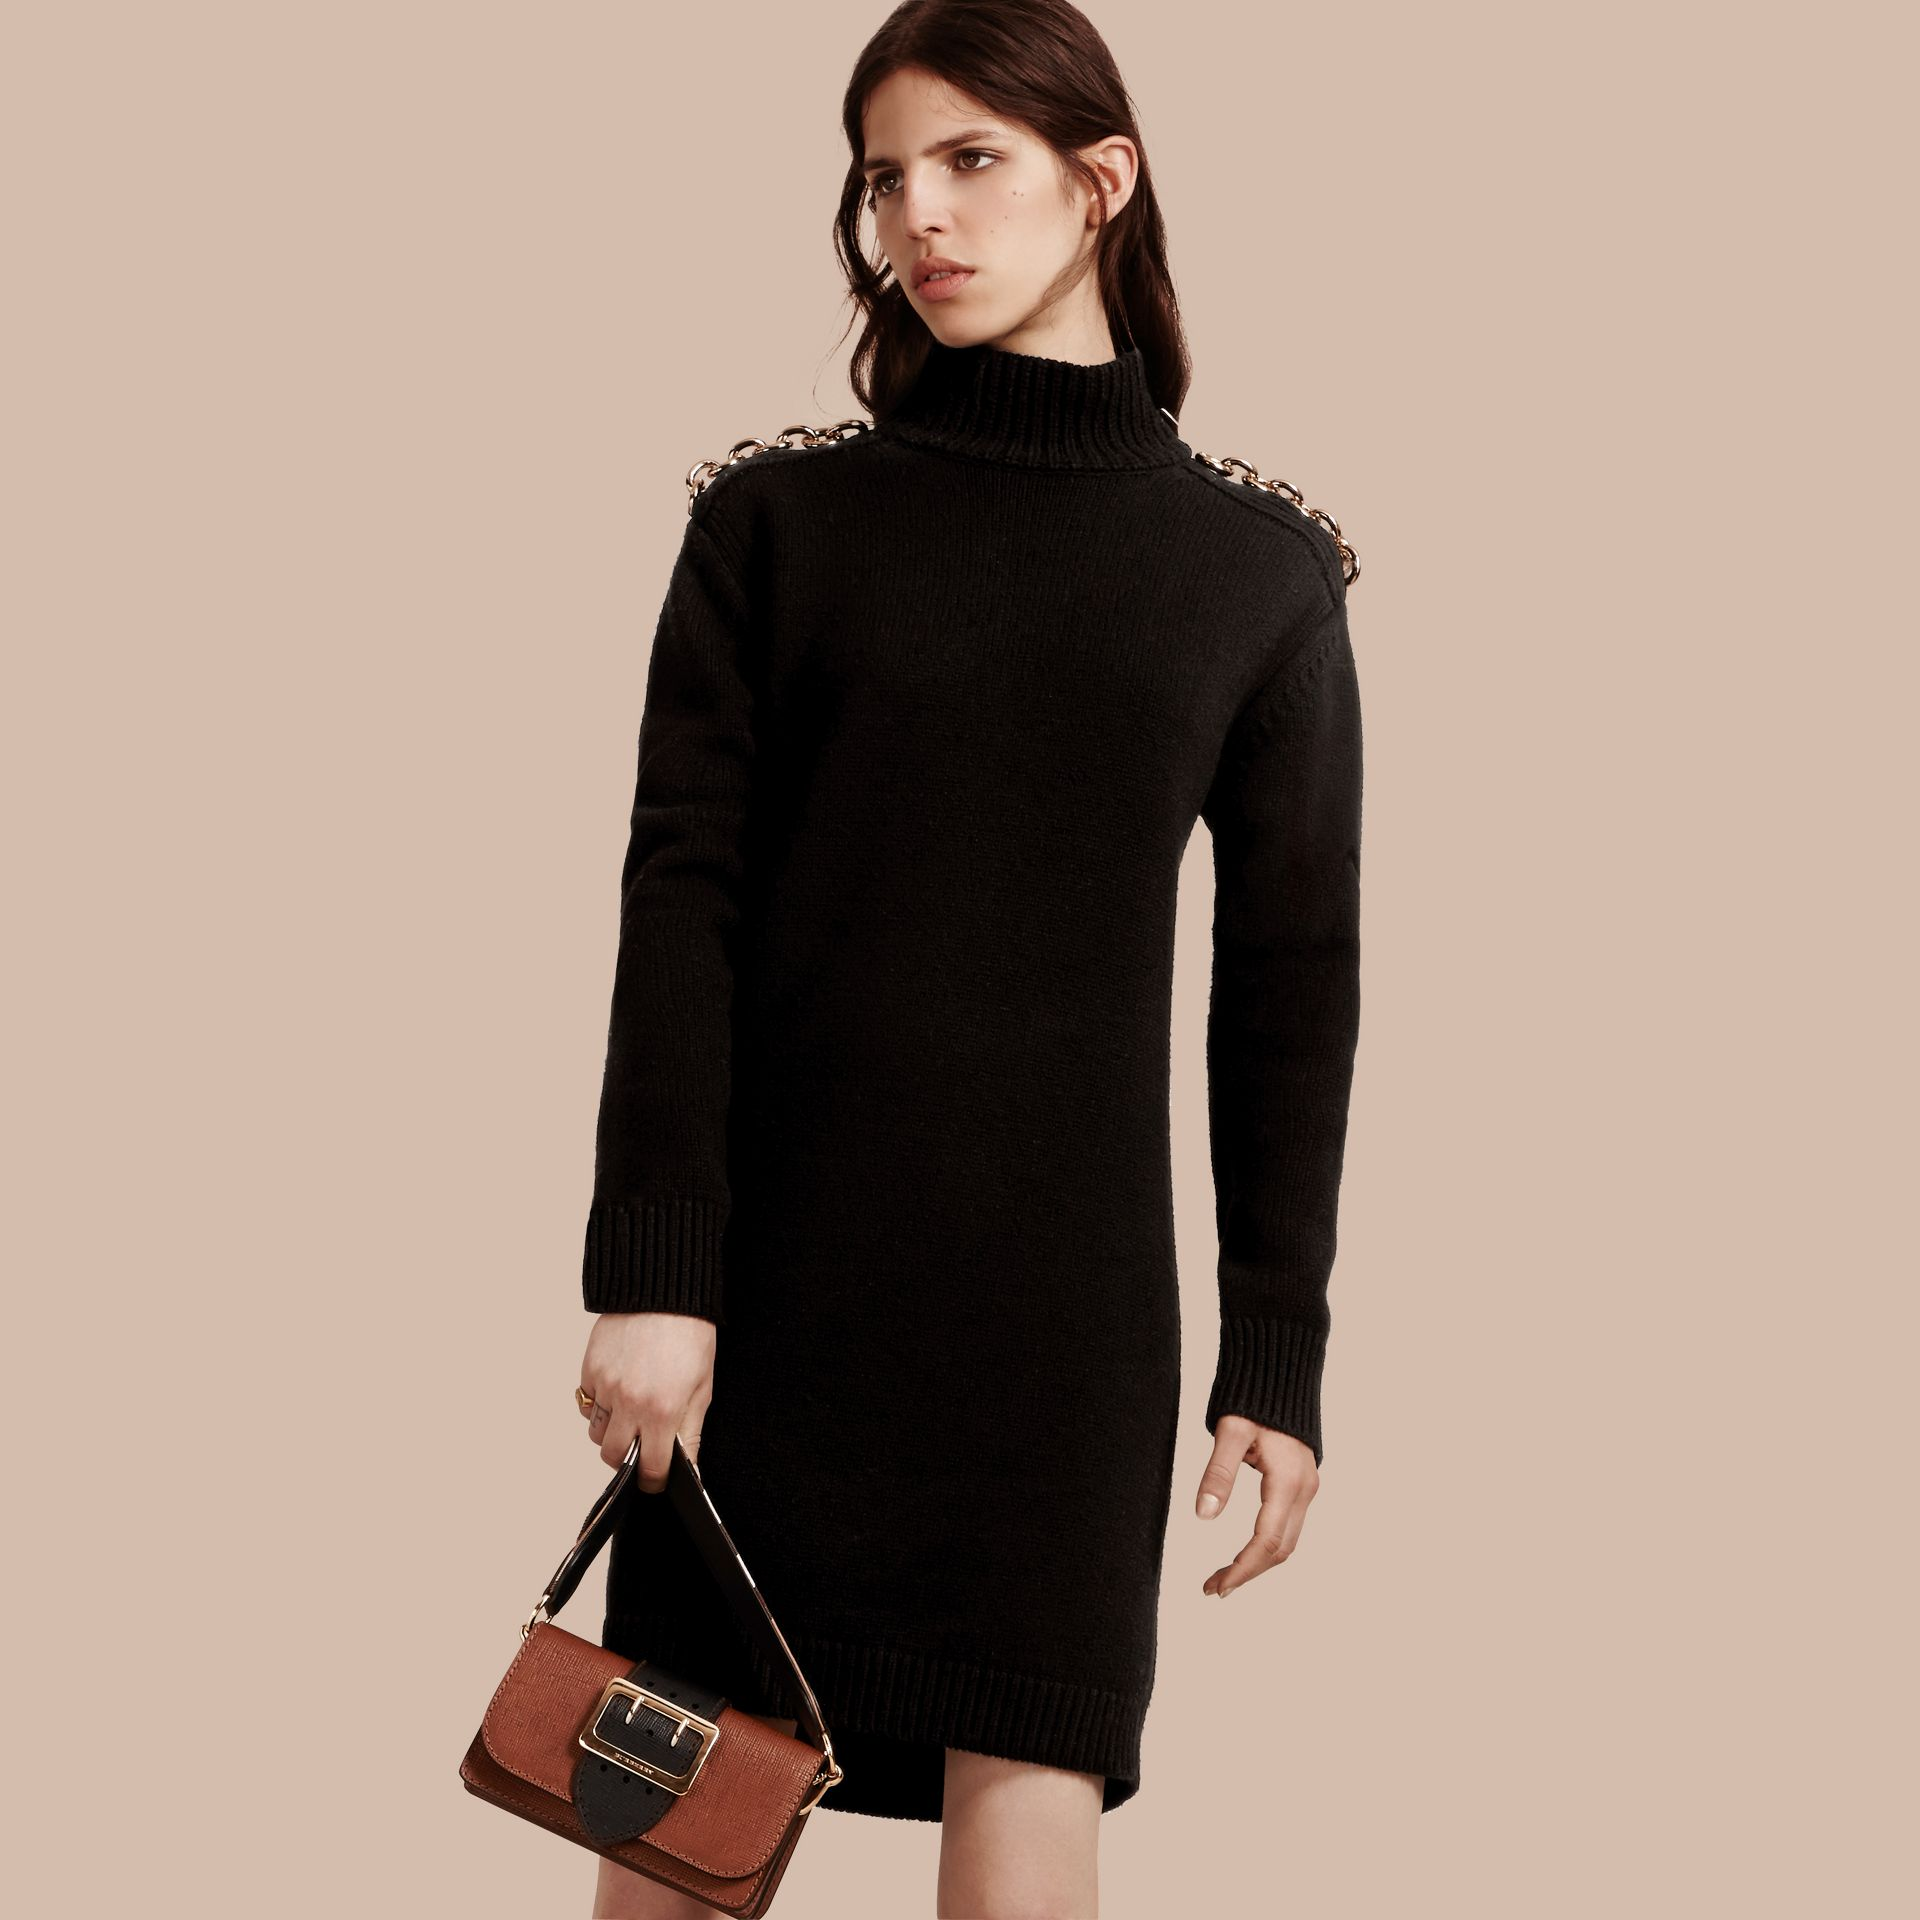 Black Chain Detail Wool Cashmere High-neck Dress - gallery image 1